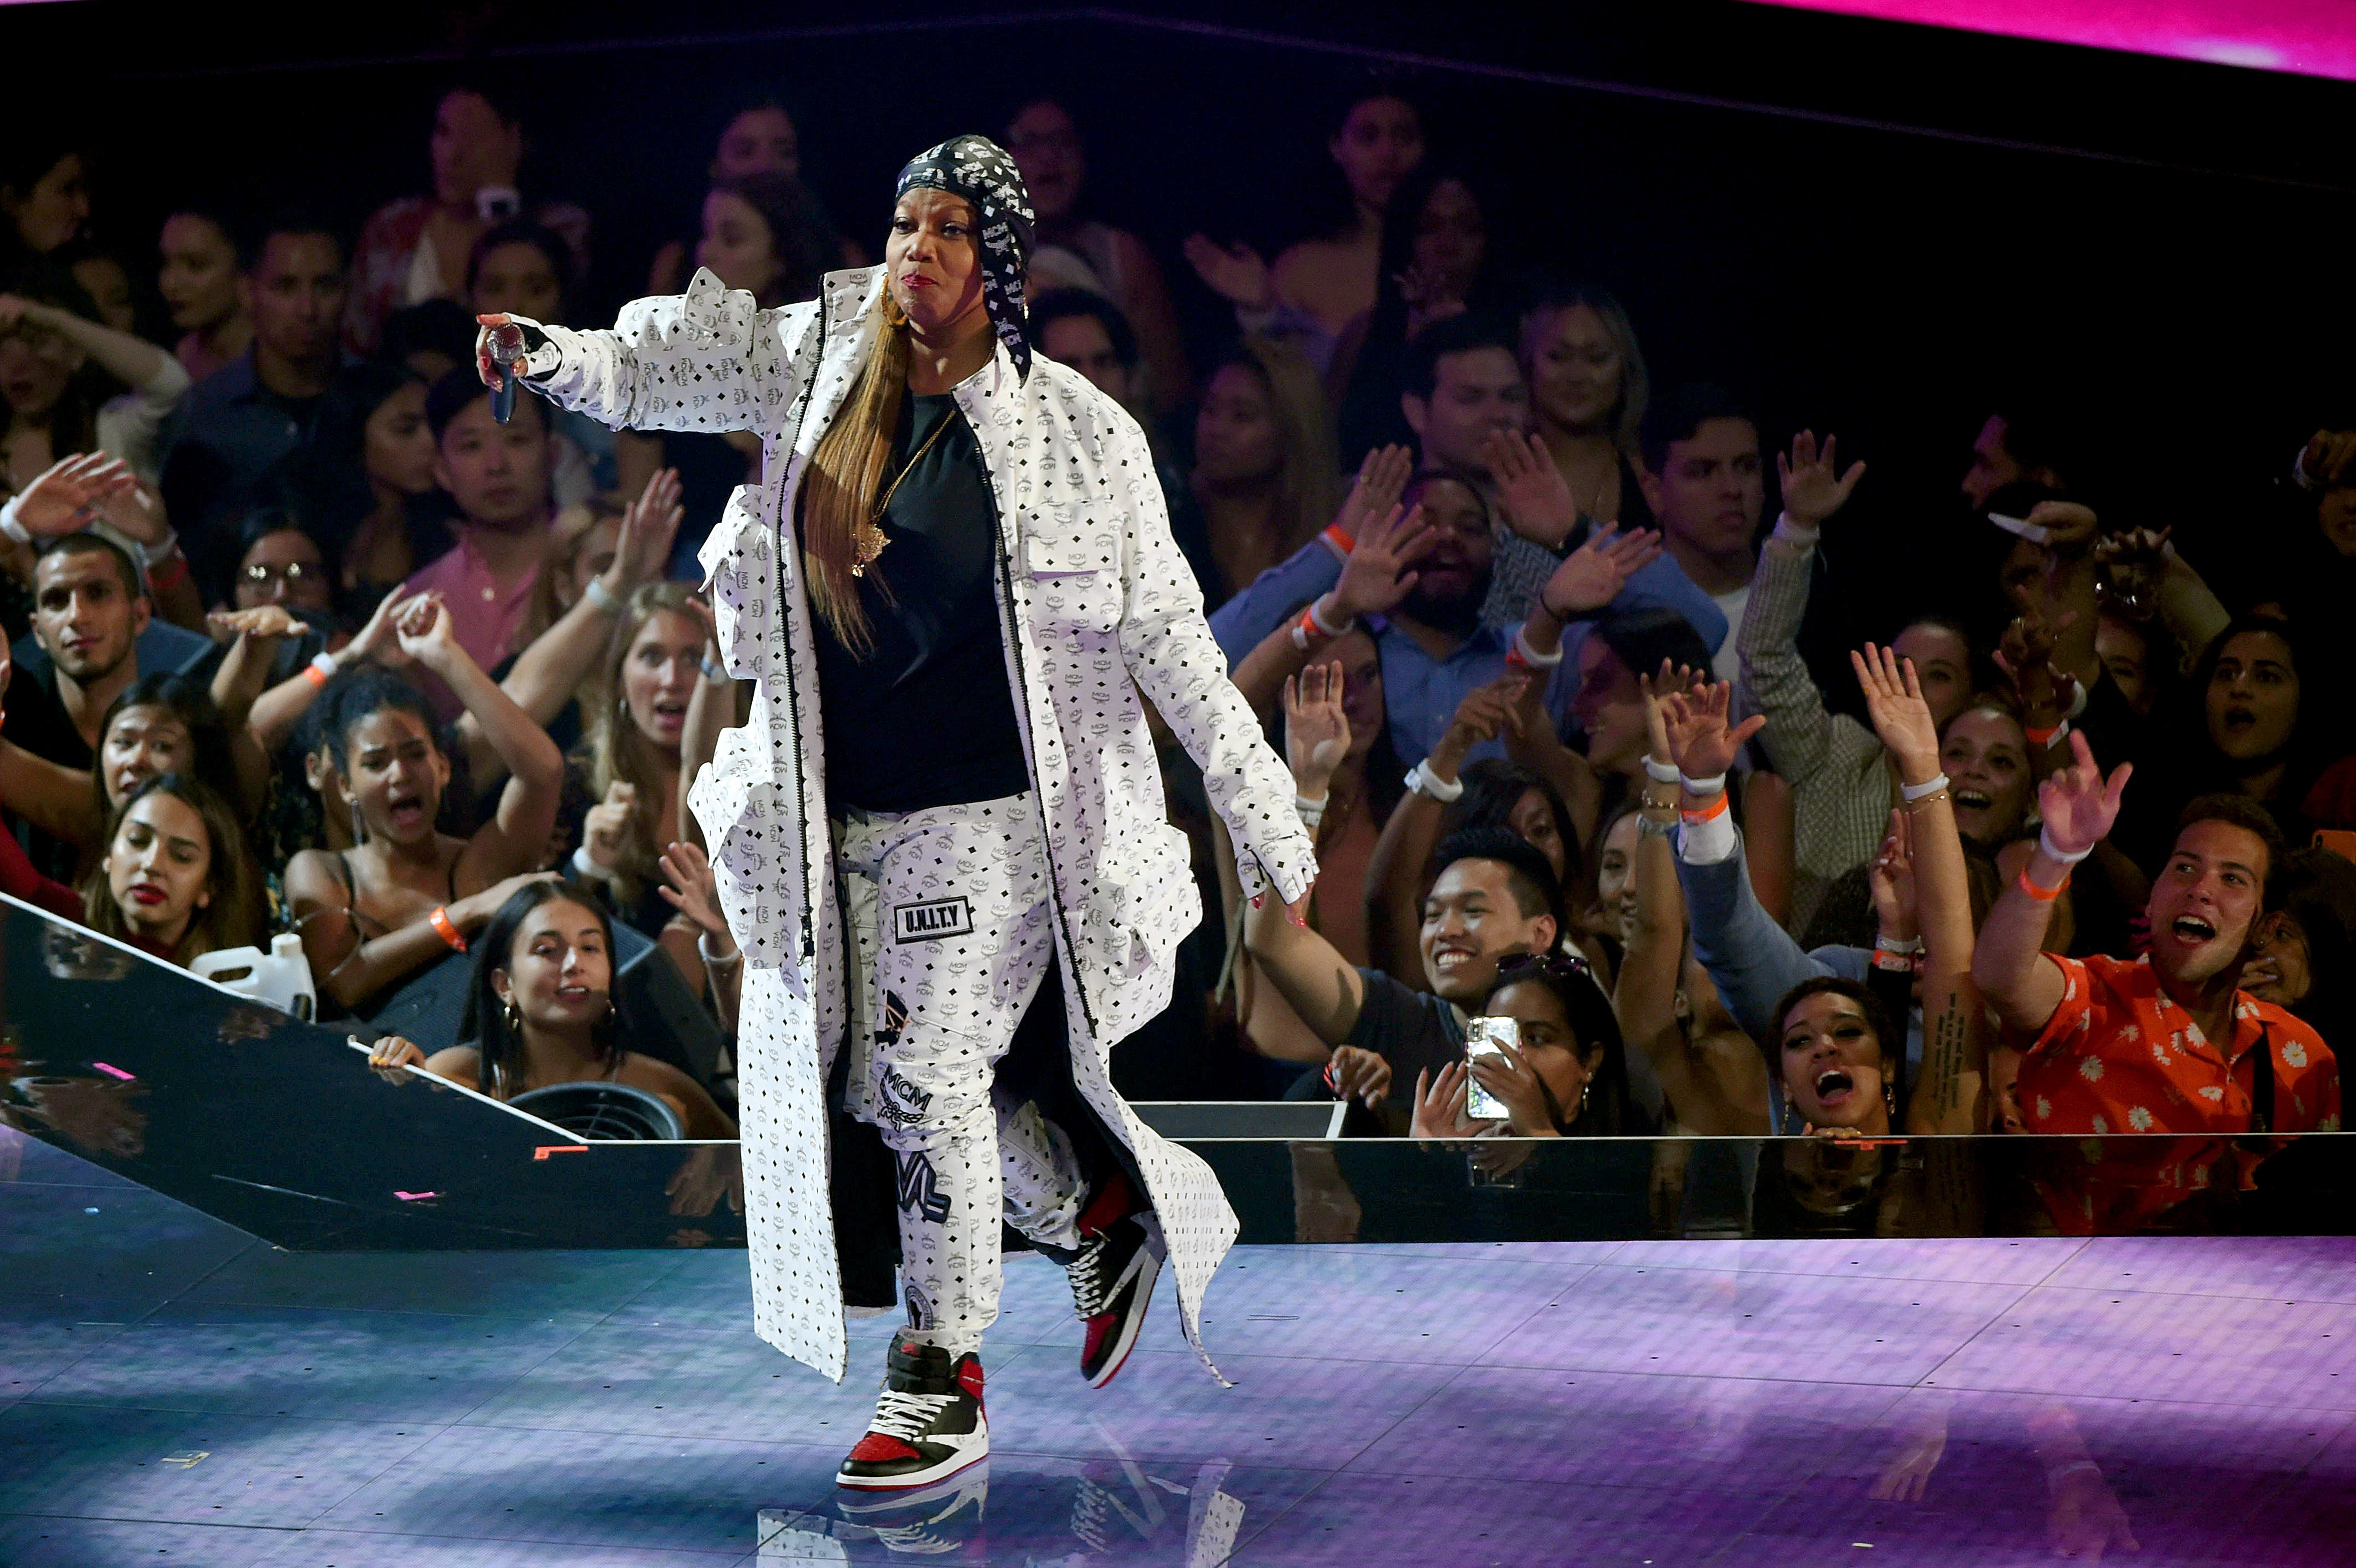 Queen Latifah performs onstage during the 2019 MTV Video Music Awards on Aug. 26, 2019 in New Jersey | Photo: Getty Images